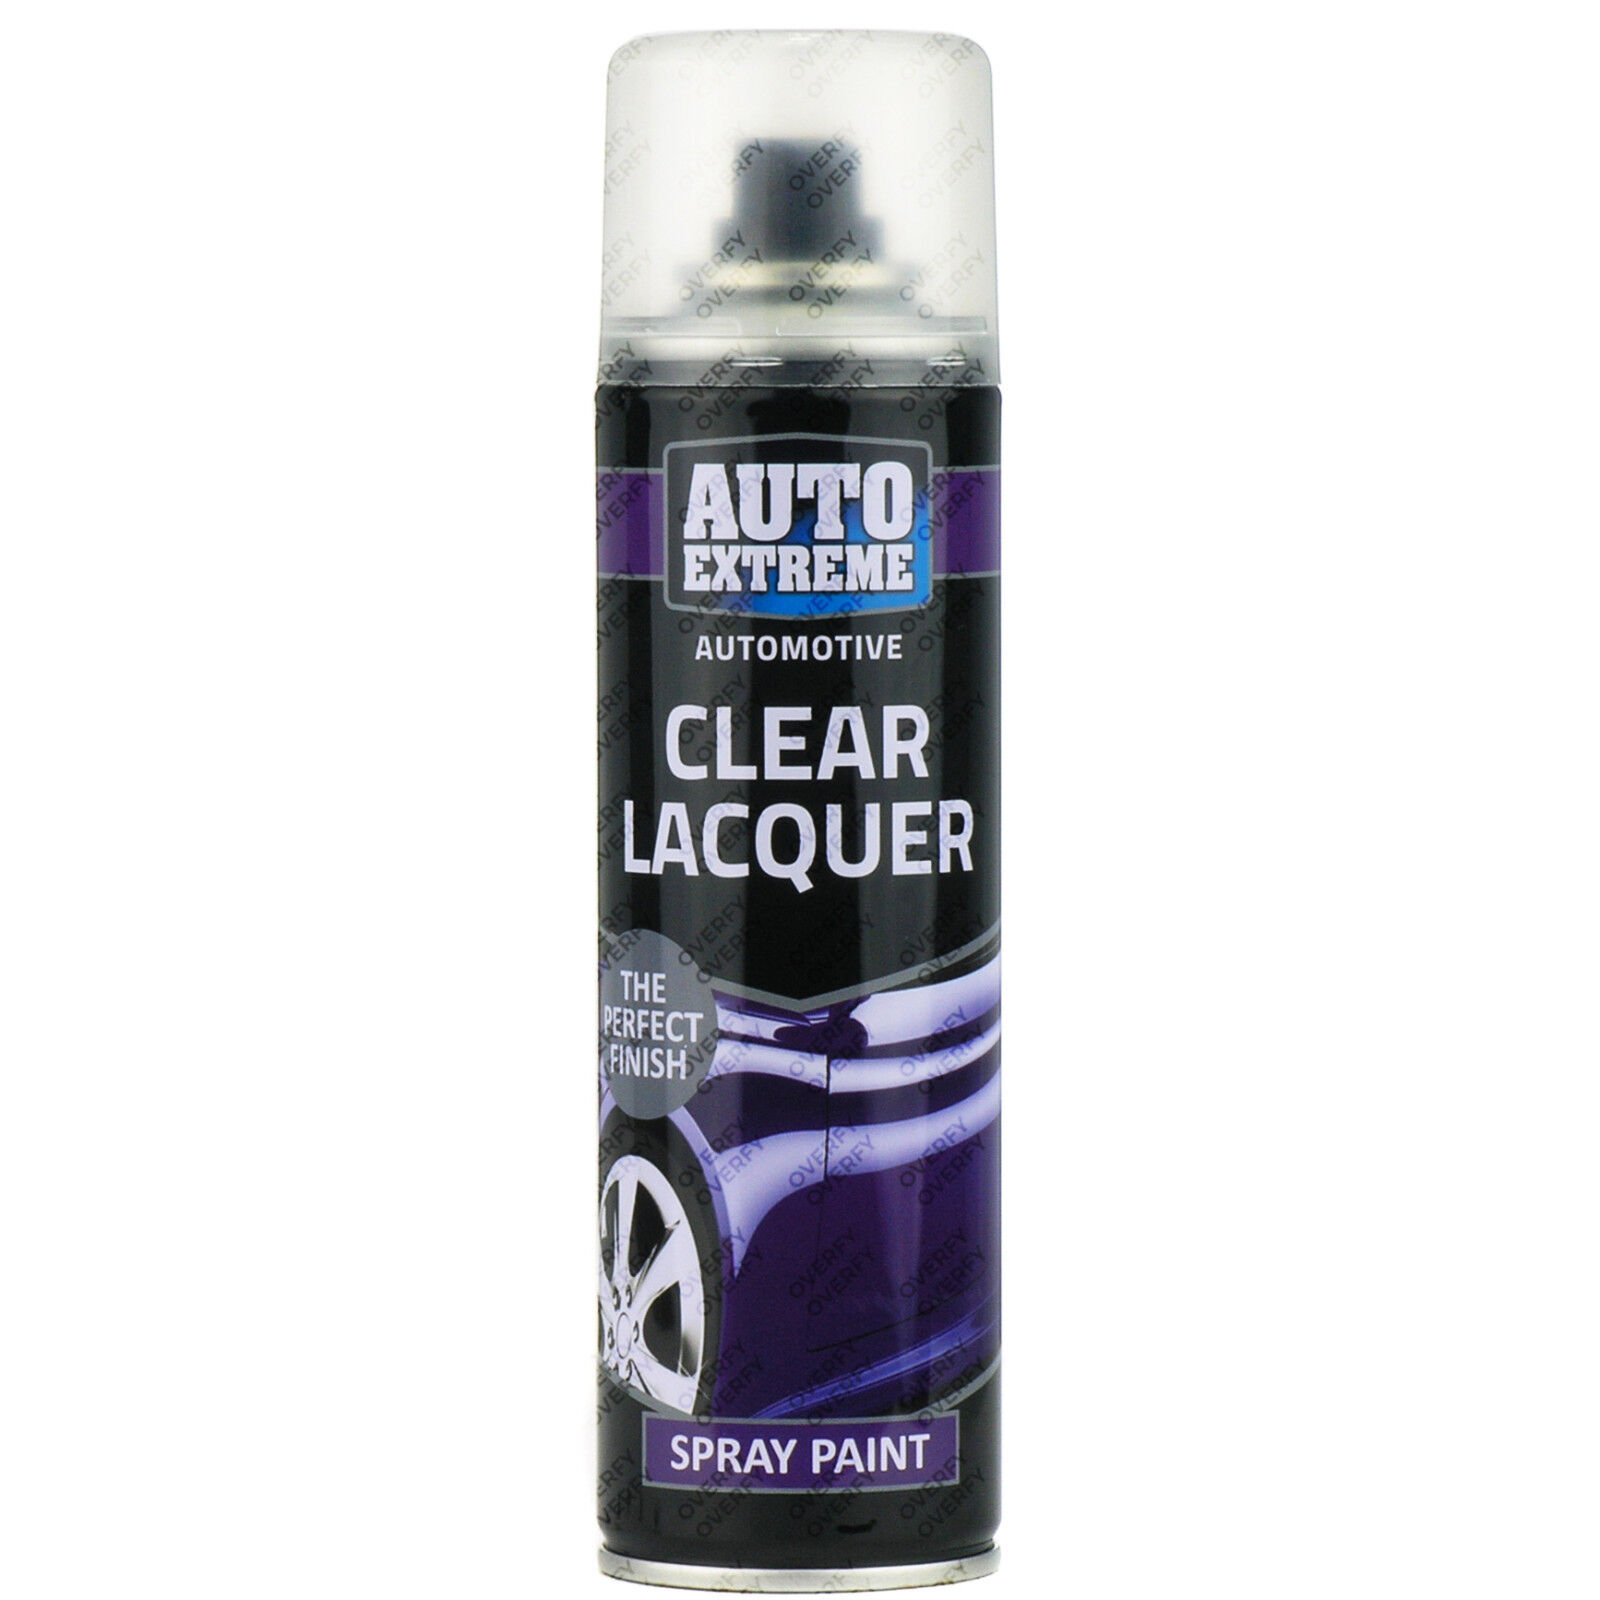 1 X Clear Lacquer Aerosol Spray Cans 250ml Car Auto Extreme Spray Paint Ebay